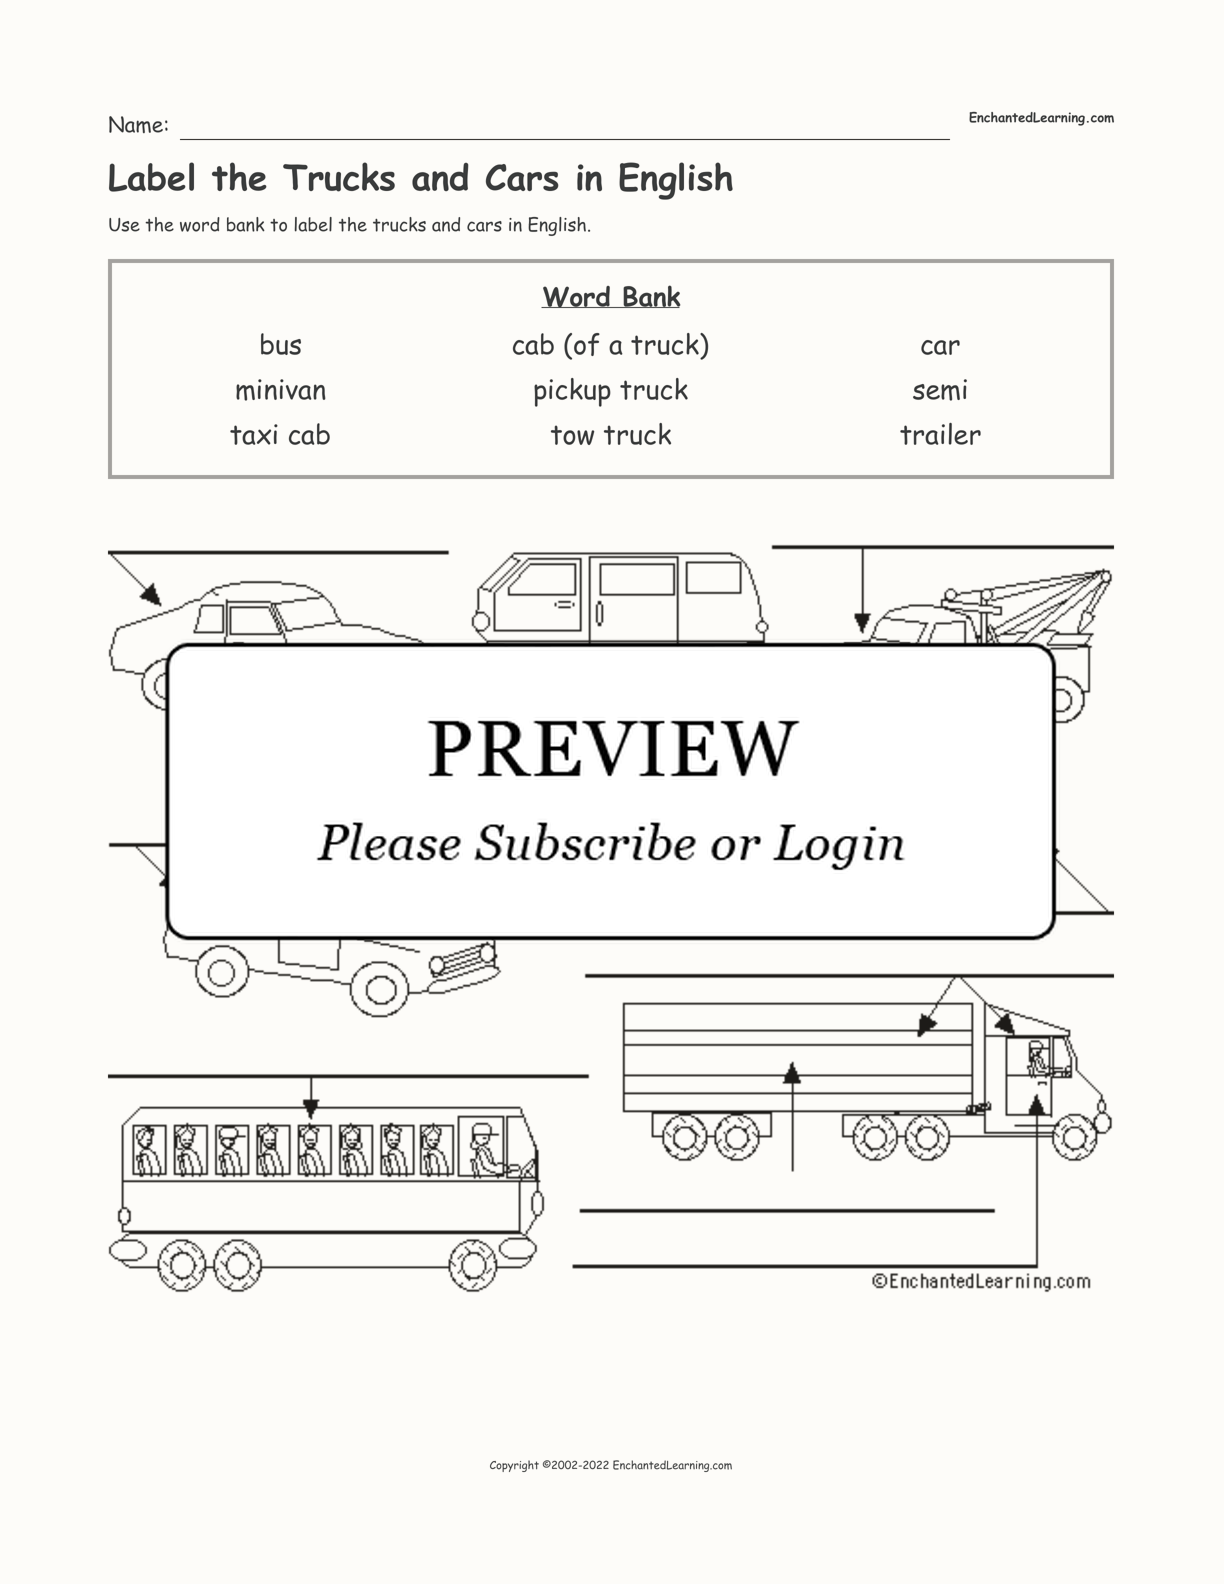 Label the Trucks and Cars in English interactive worksheet page 1